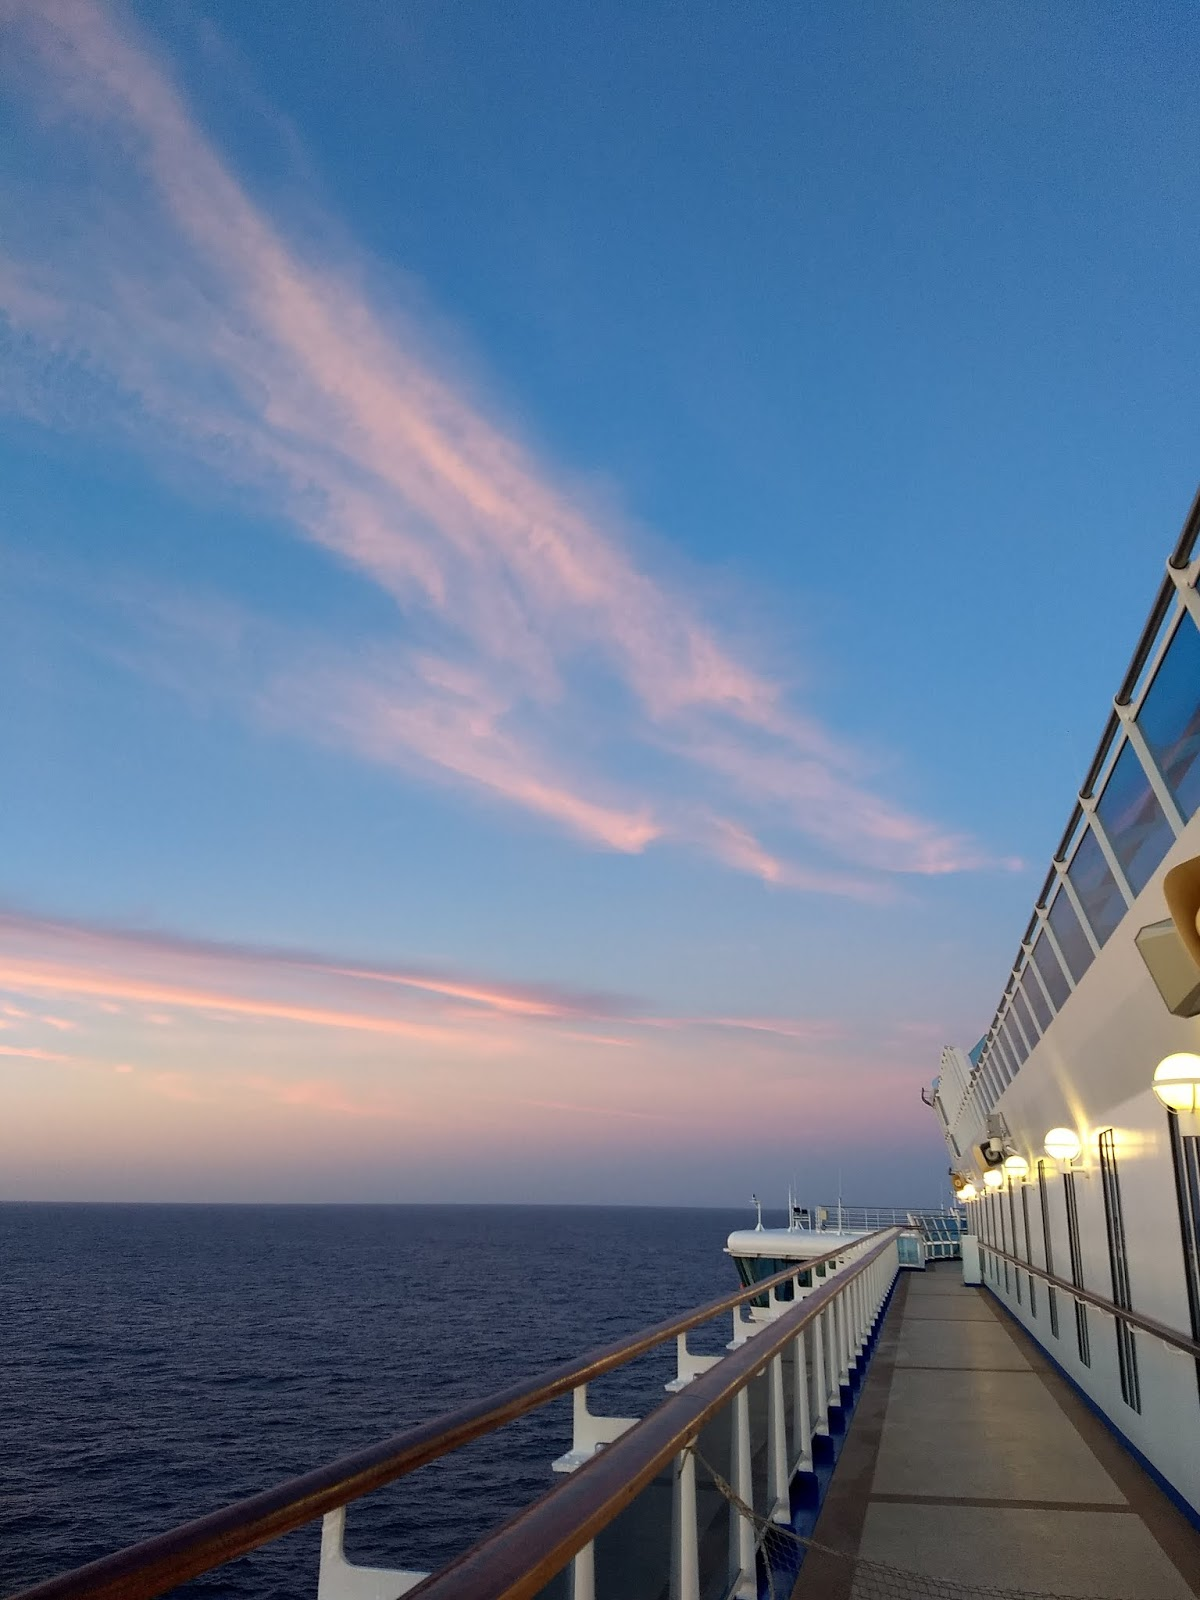 View of a sunrise sky from a cruise ship on the Atlantic Ocean.